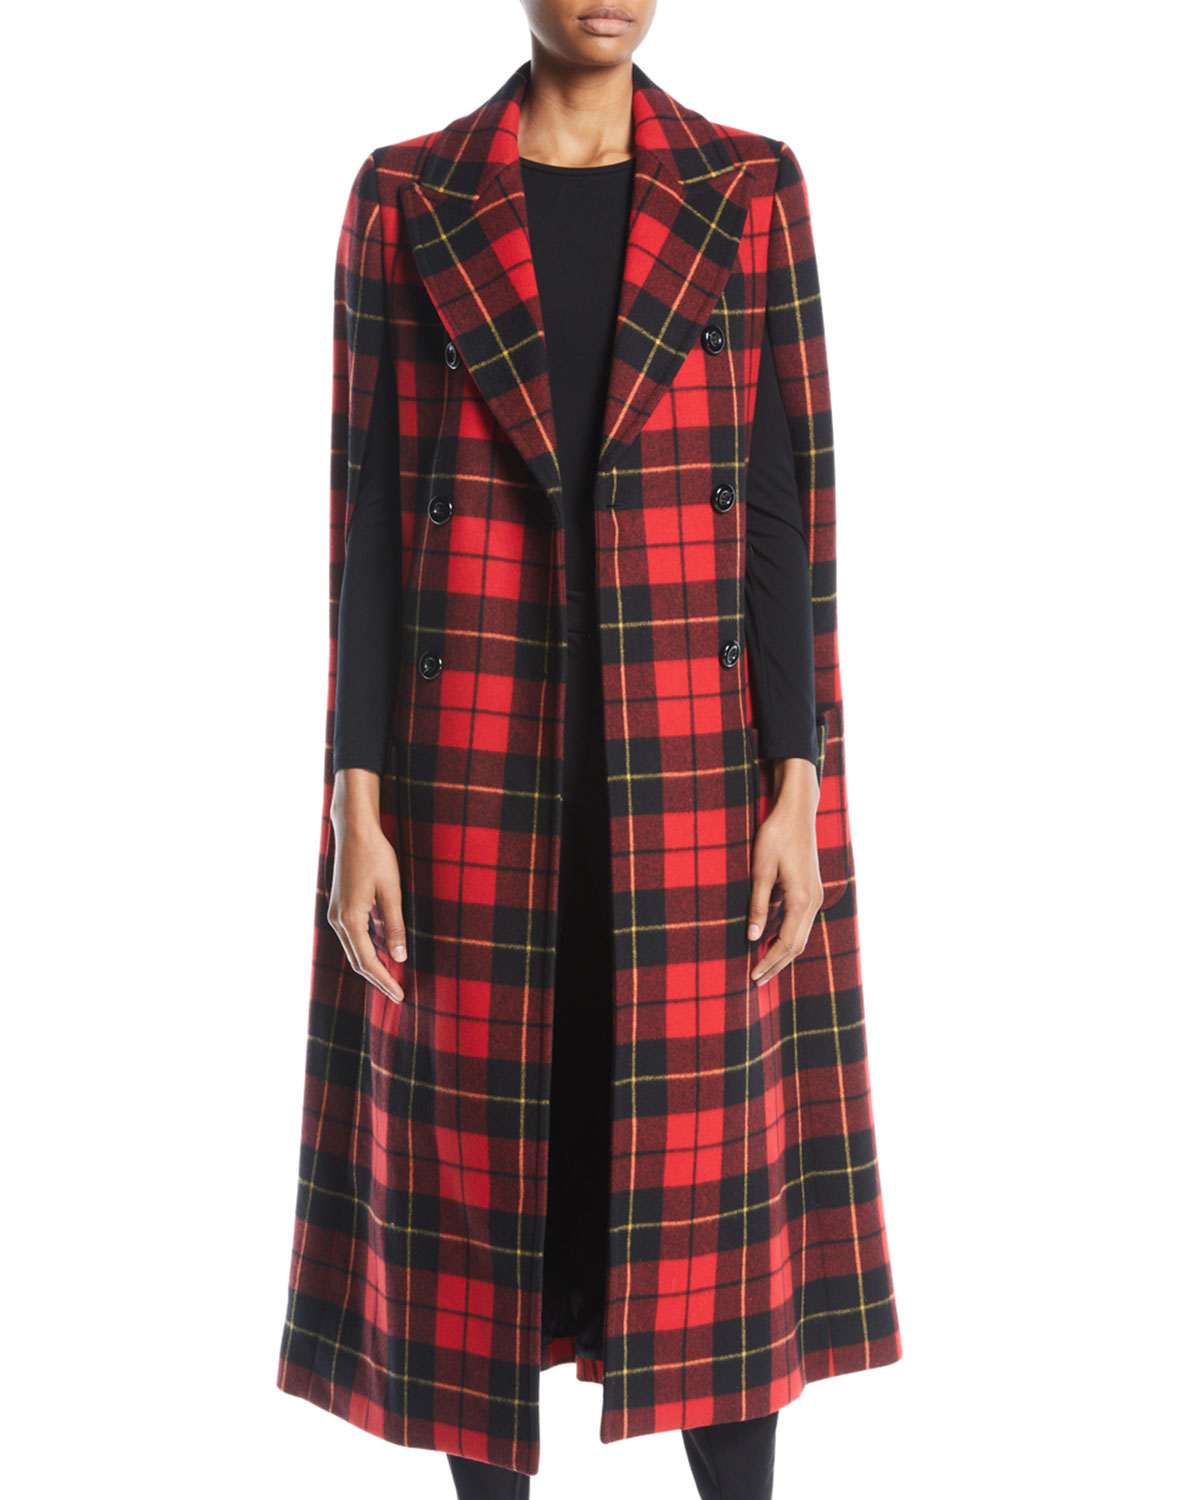 Michael Kors Collection Double Breasted Tartan Plaid Cape